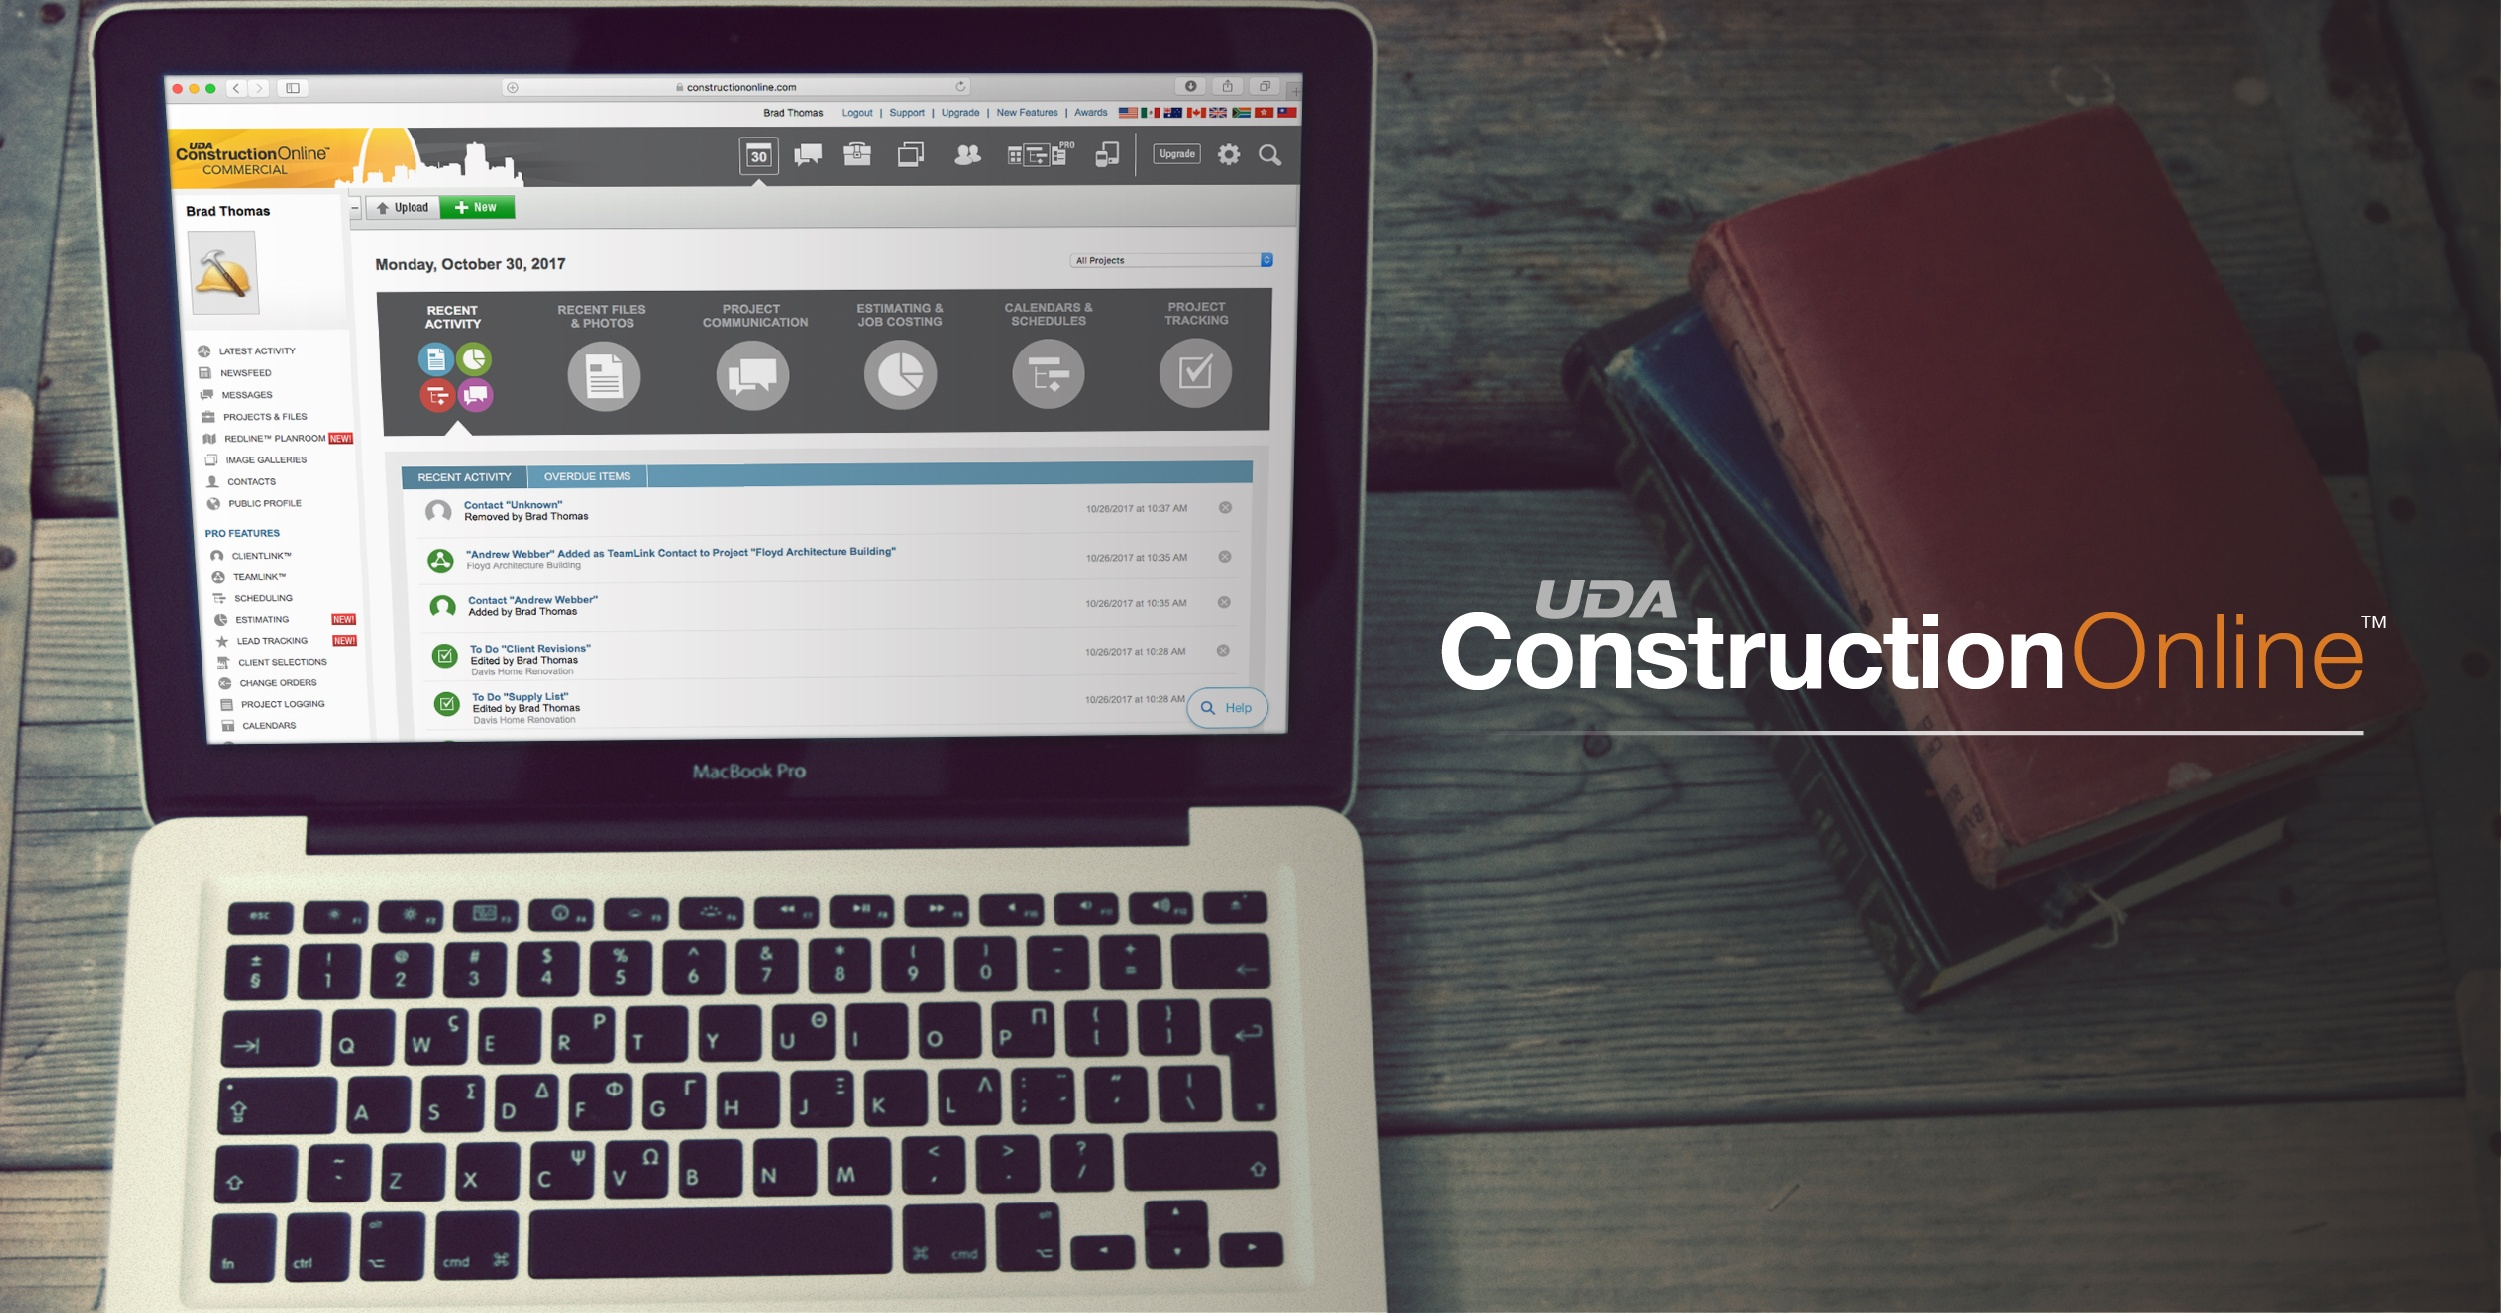 5 Easy Steps to Becoming a ConstructionOnline Power User